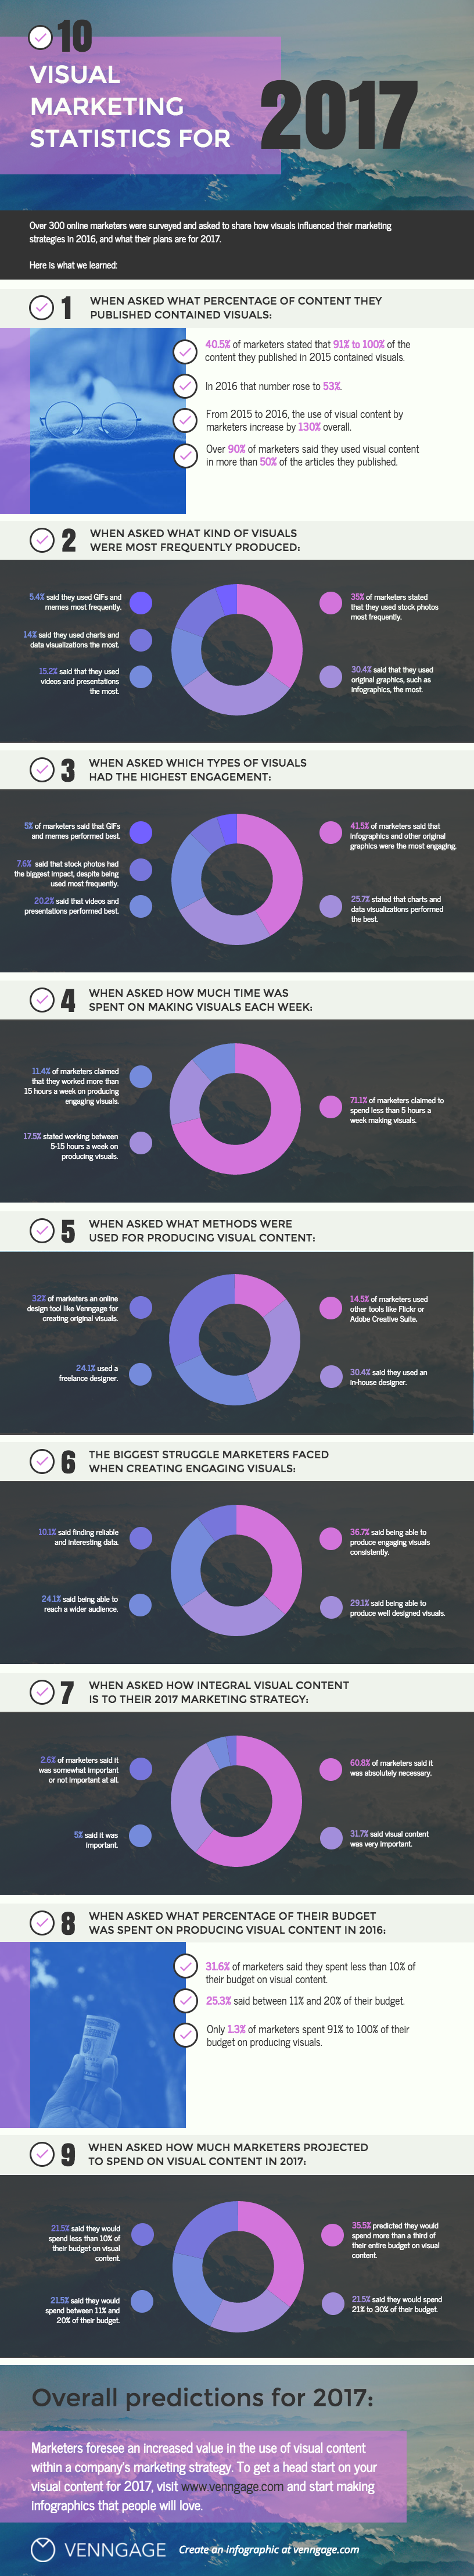 Visual Content Marketing Statistics to Know for 2017